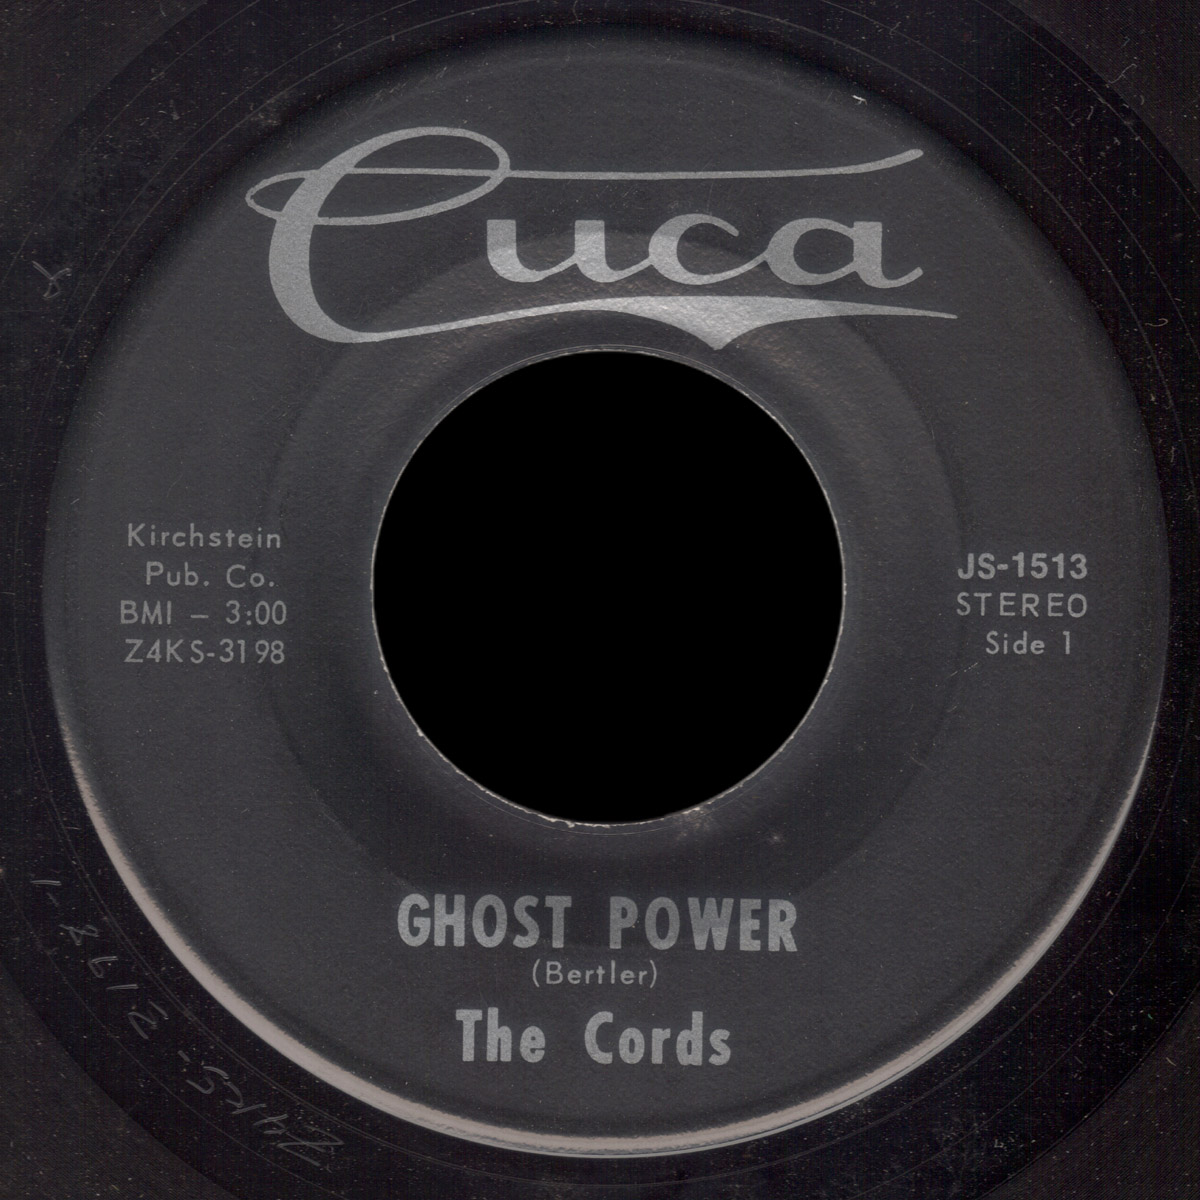 The Cords Cuca 45 Ghost Power